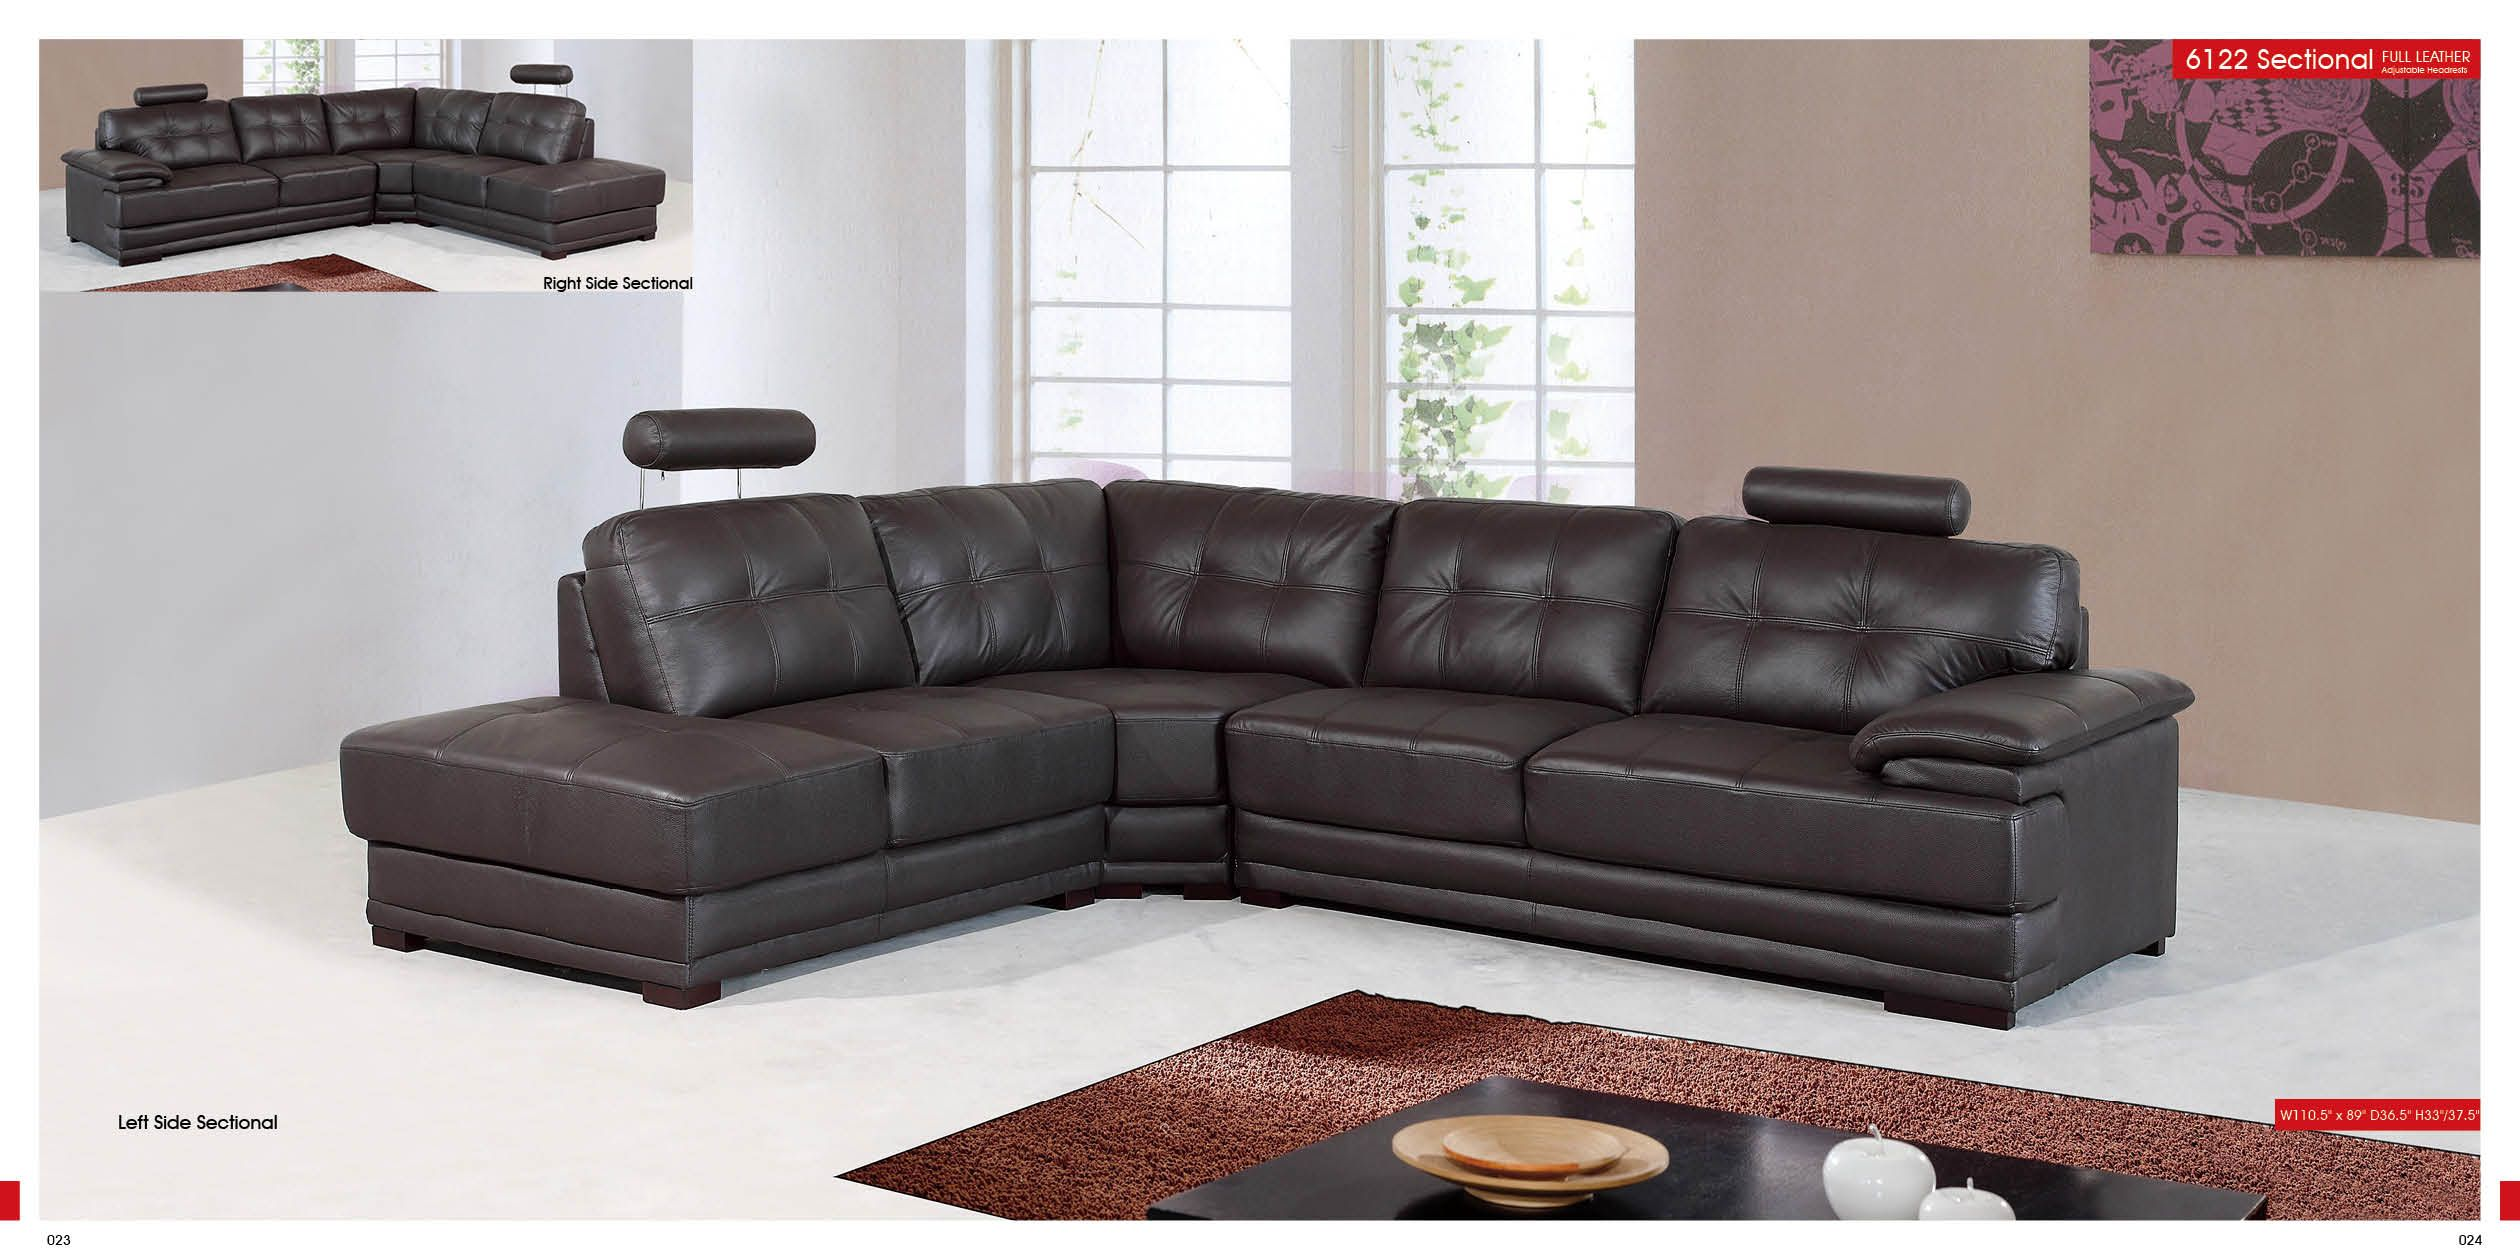 Pasadena Large Sleeper Sectional Sofa Bed With Storage Ottoman And 2 Stools Sectional Sleeper Sofa Sofa Bed With Storage Storage Ottoman